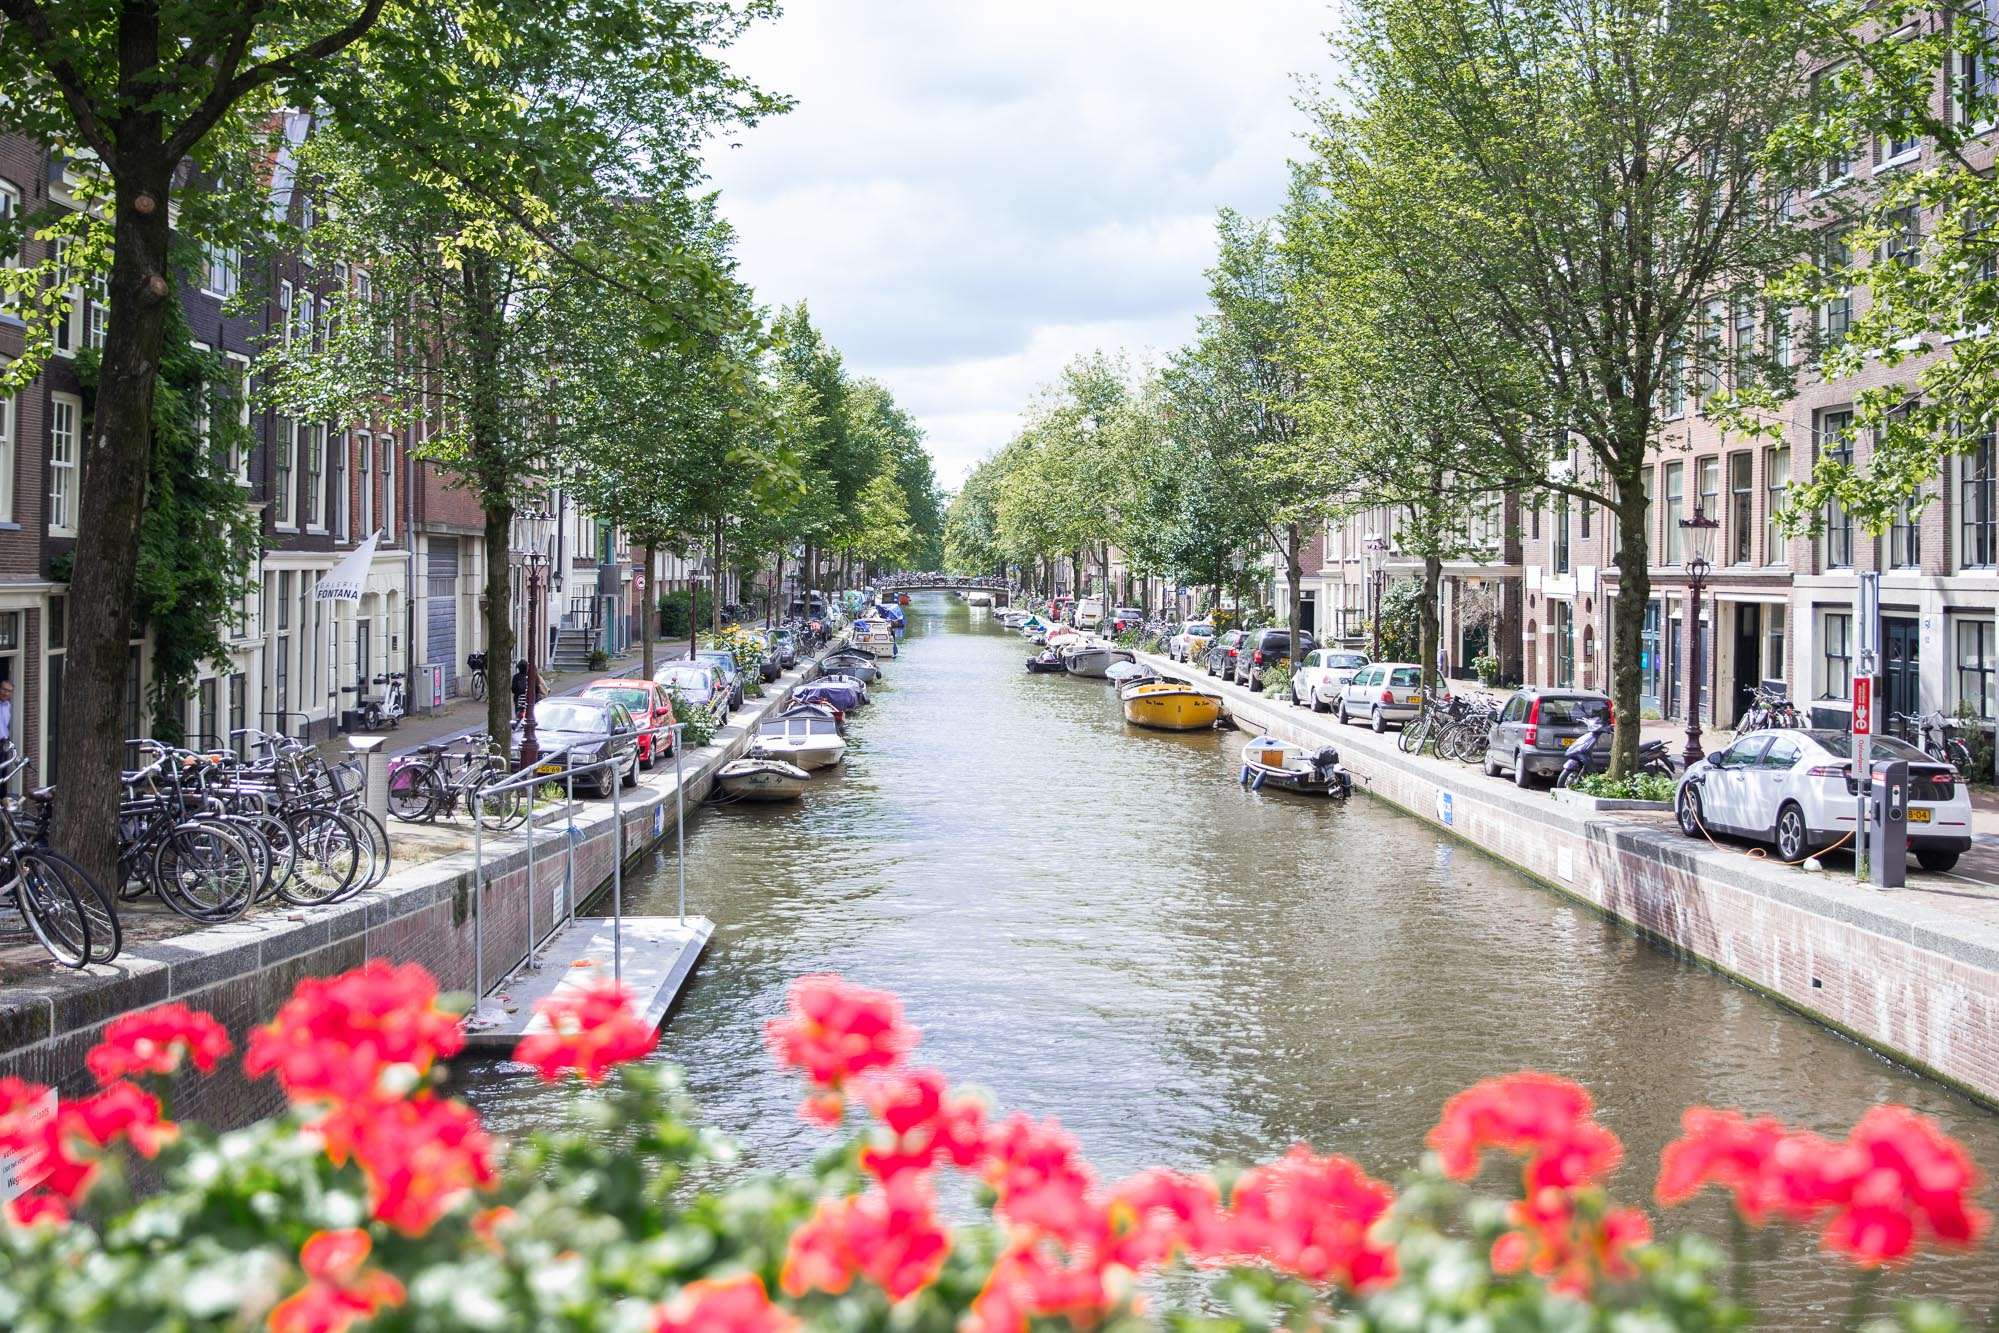 Canals with flowers in the springtime in Amsterdam, Netherlands